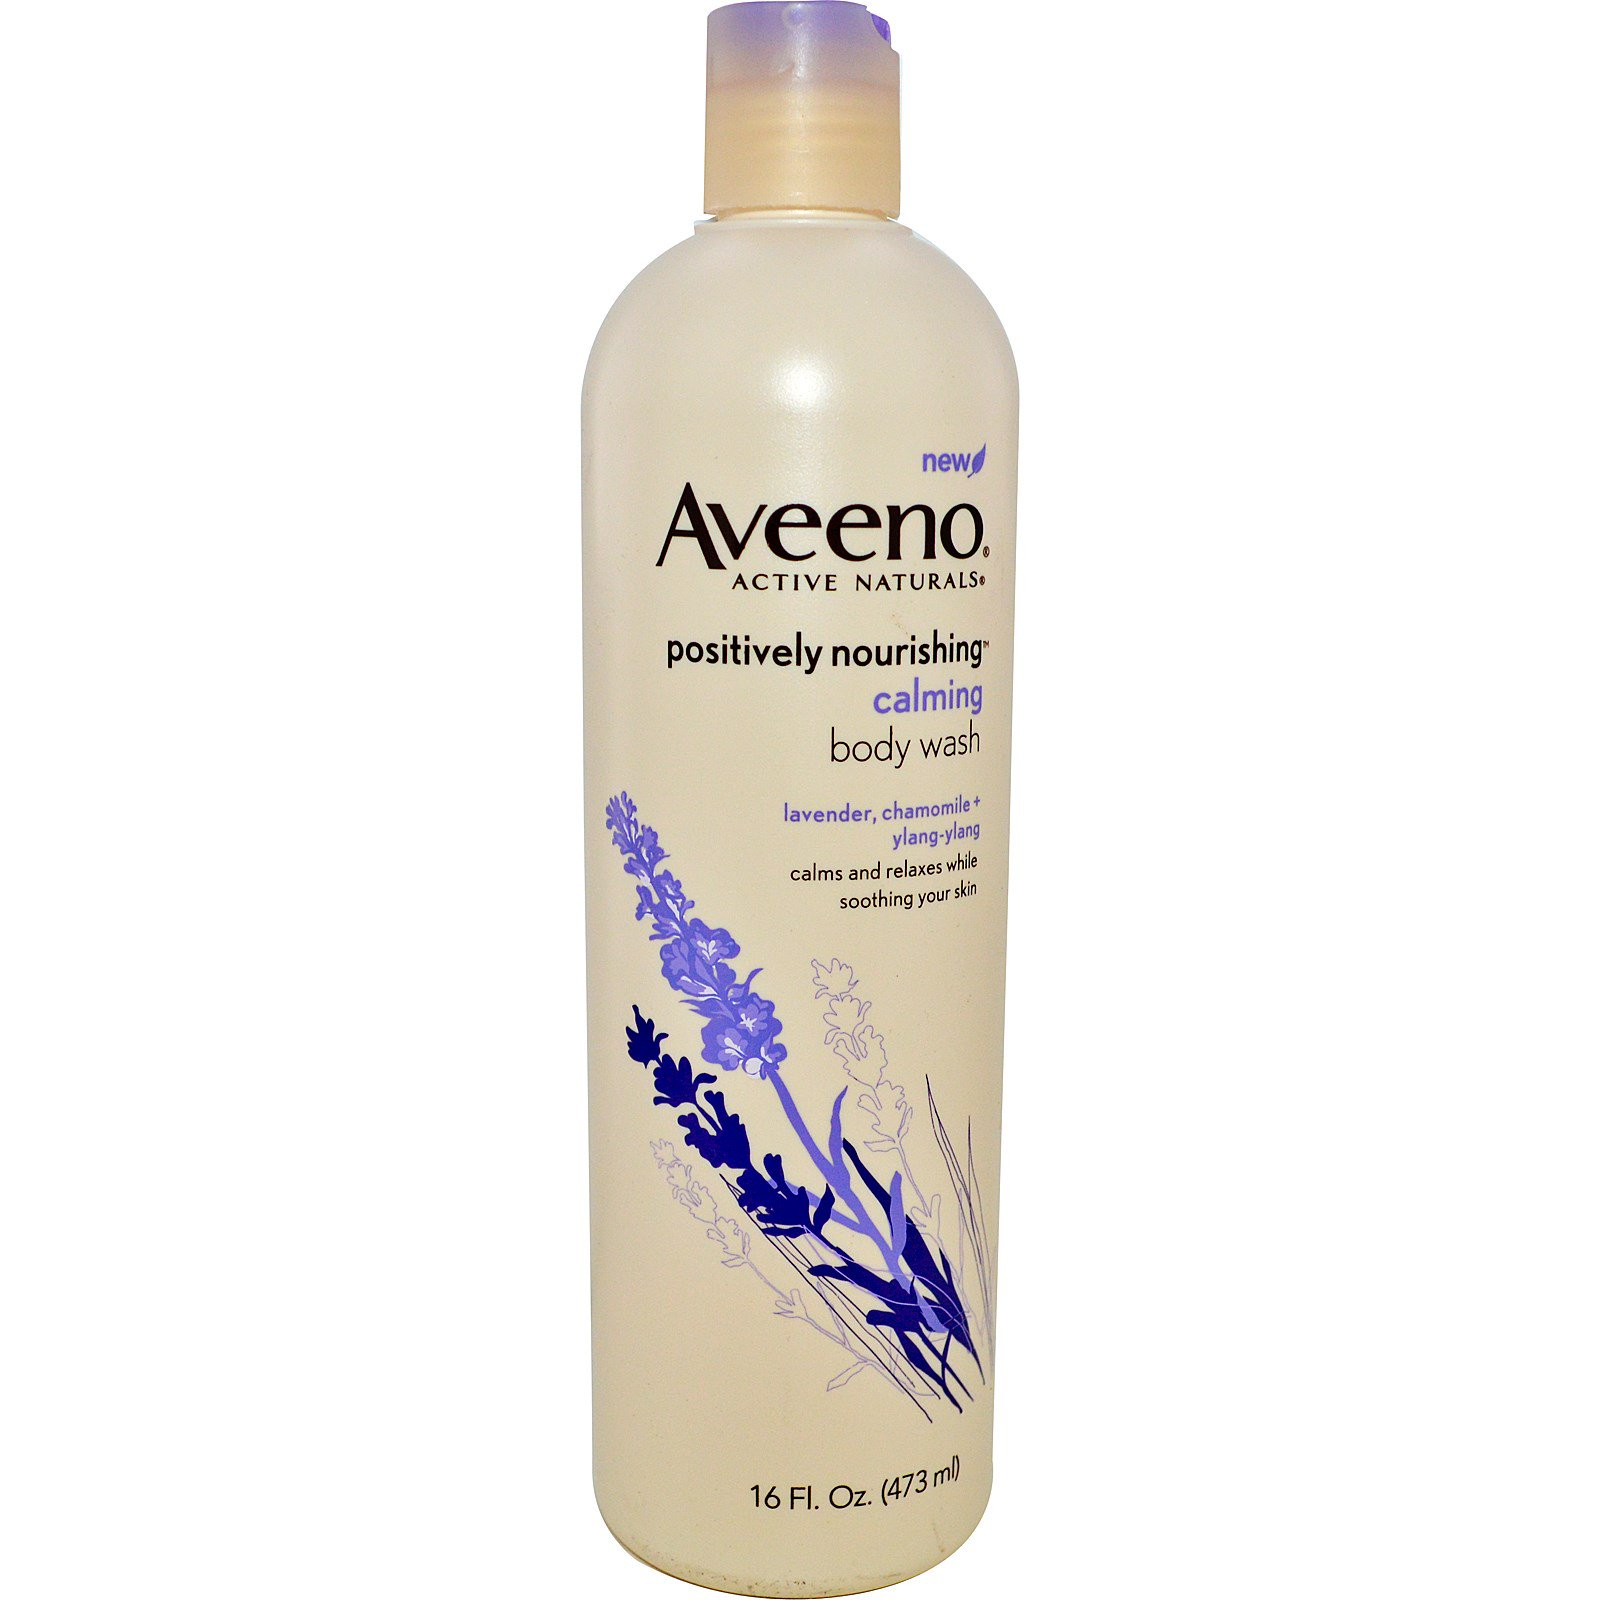 Aveeno, Active Naturals, Positively Nourishing, Calming Body Wash, 16 fl. oz. (473 ml)